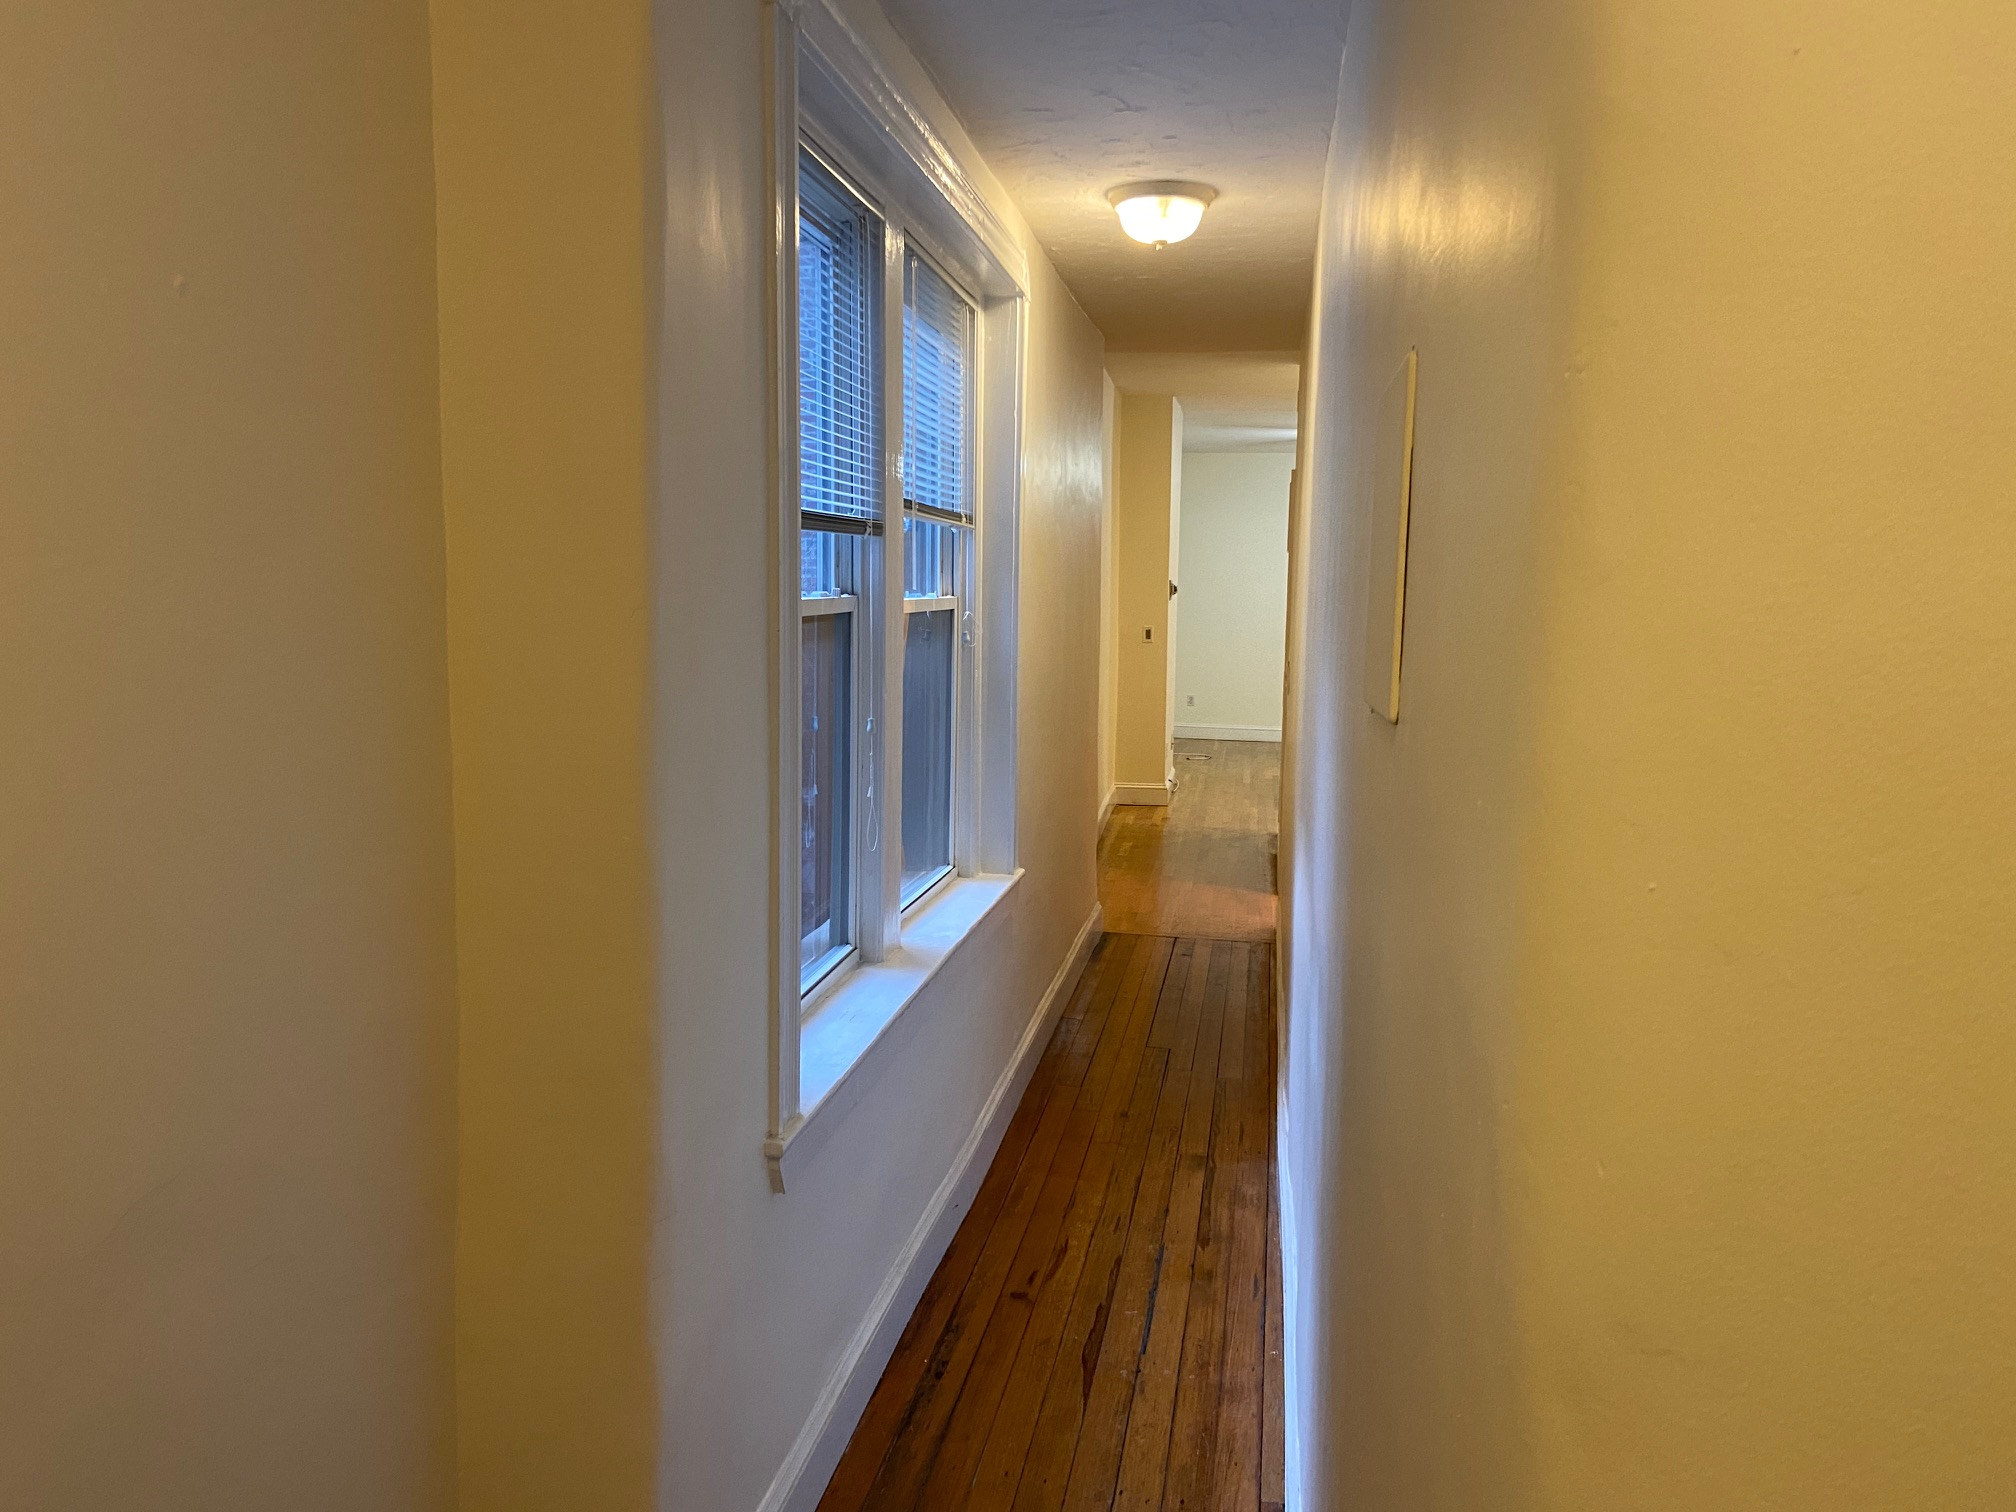 2 Beds, 1 Bath apartment in Boston, Beacon Hill for $1,900